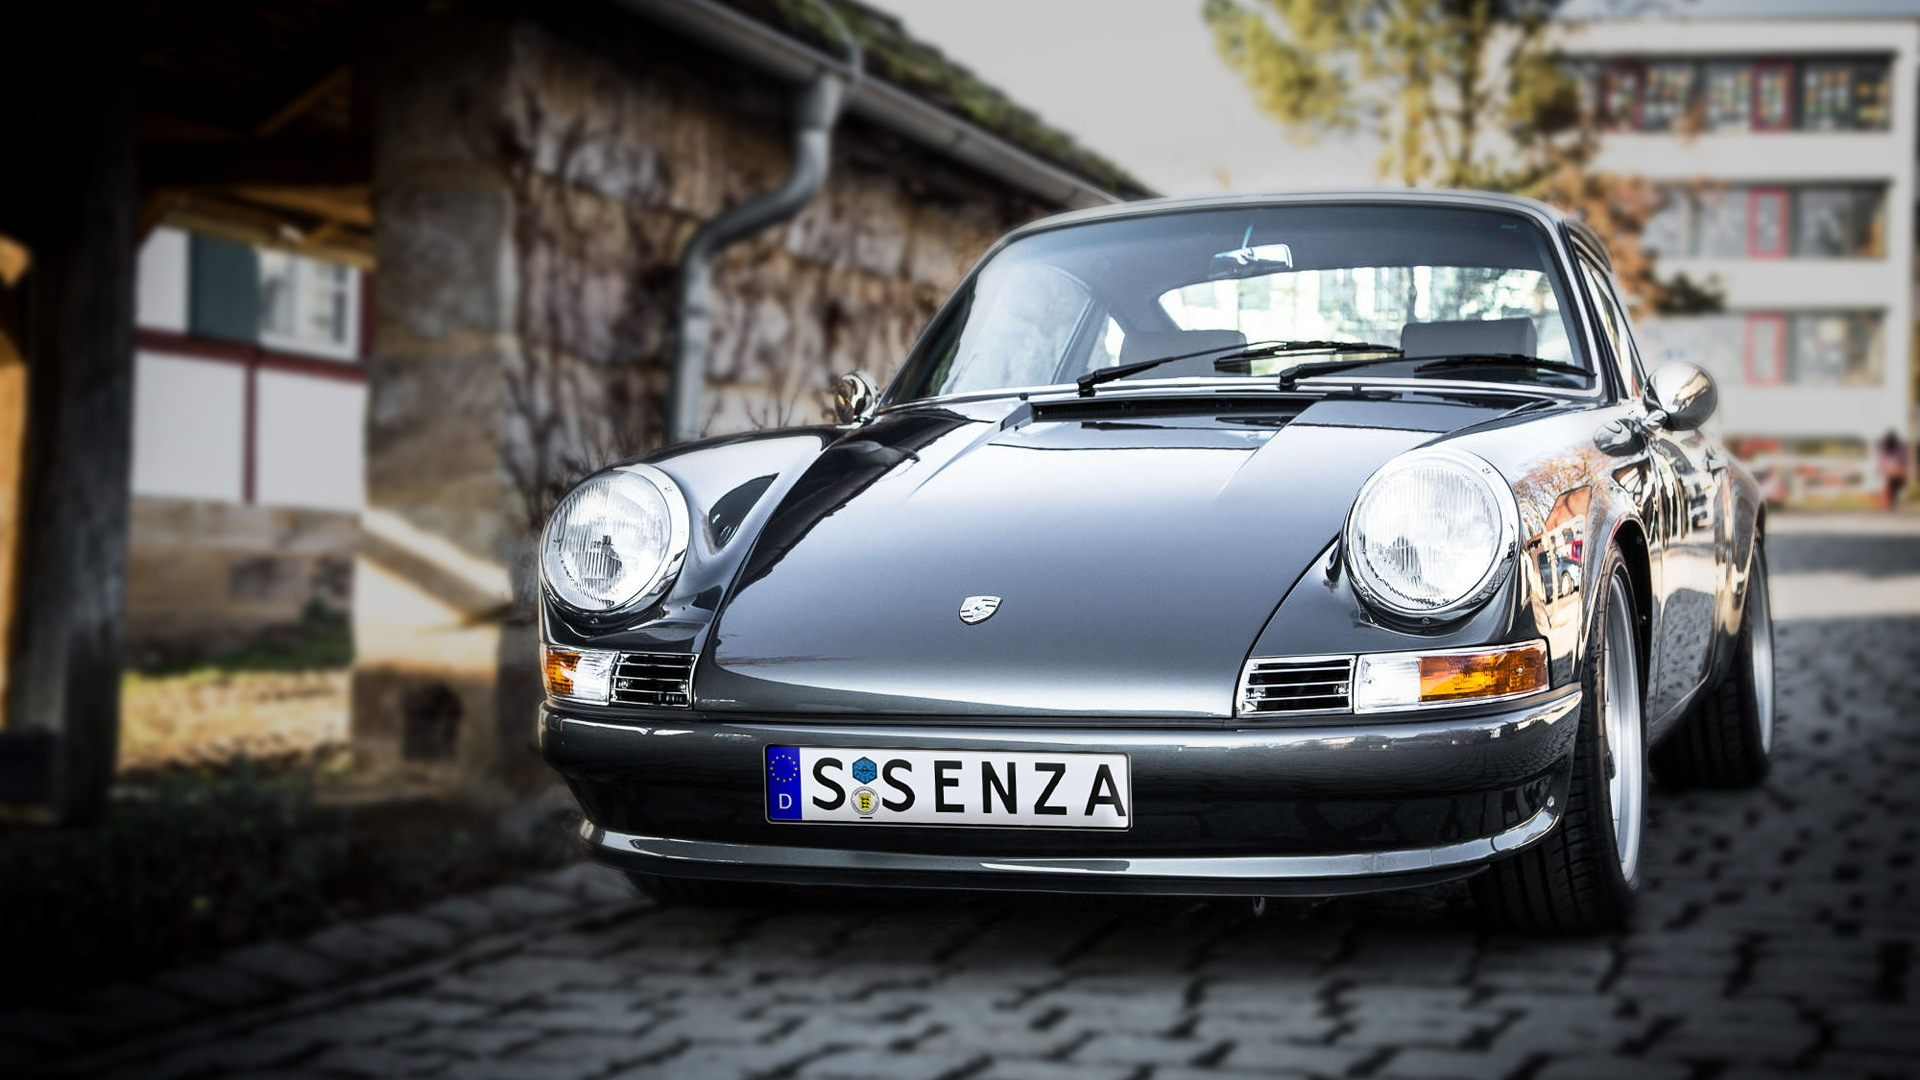 Voitures Extravert Quintessenza electric Porsche 911 conversion